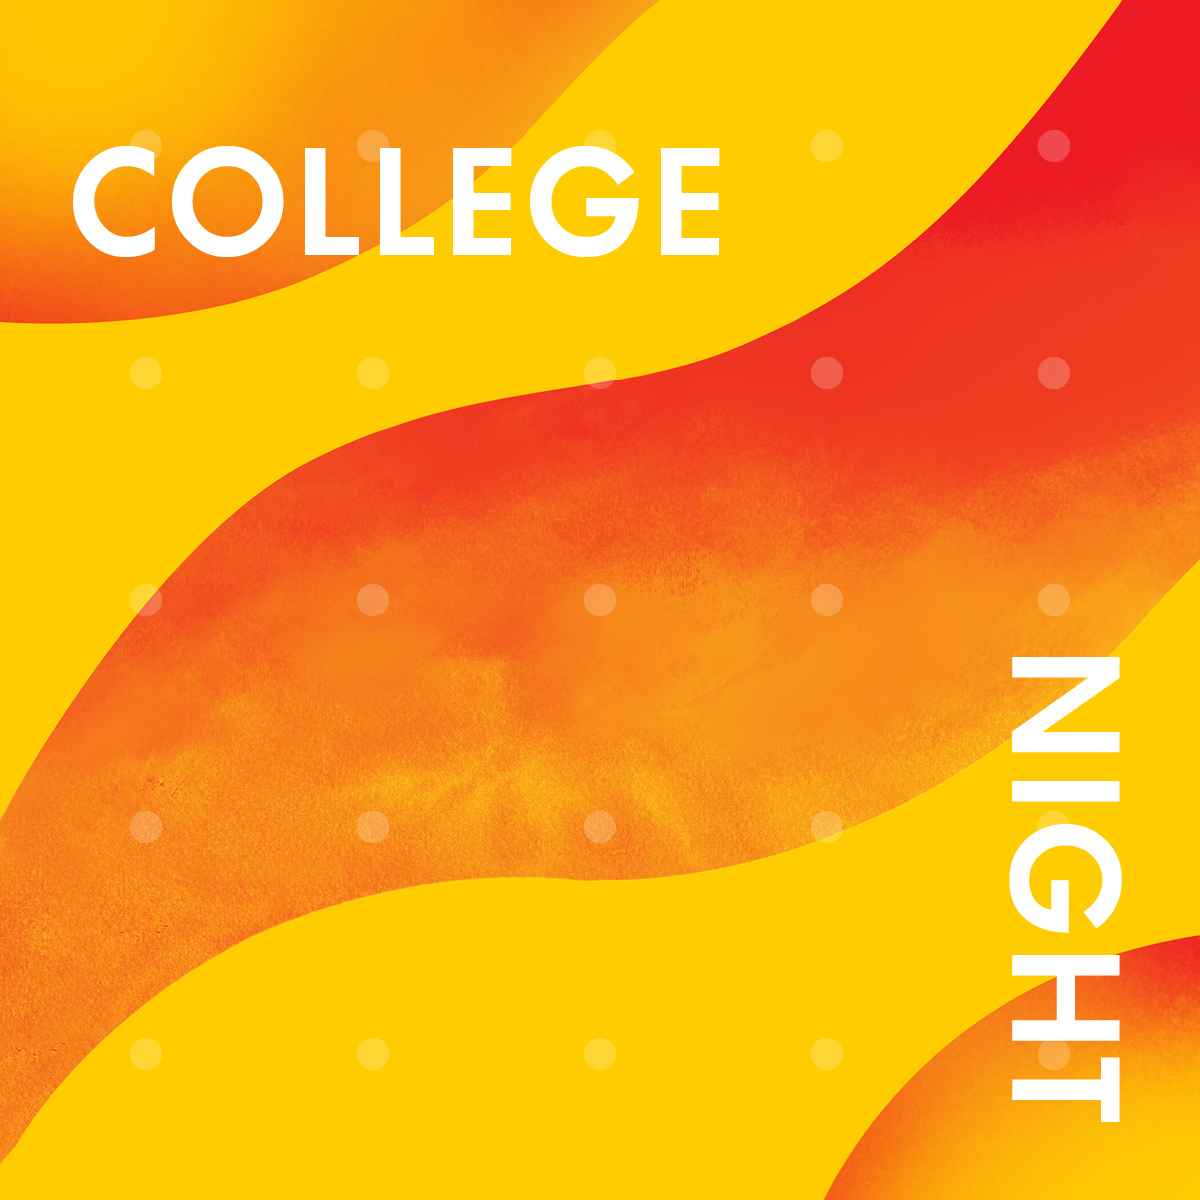 yellow and orange waves announcing college night in white text